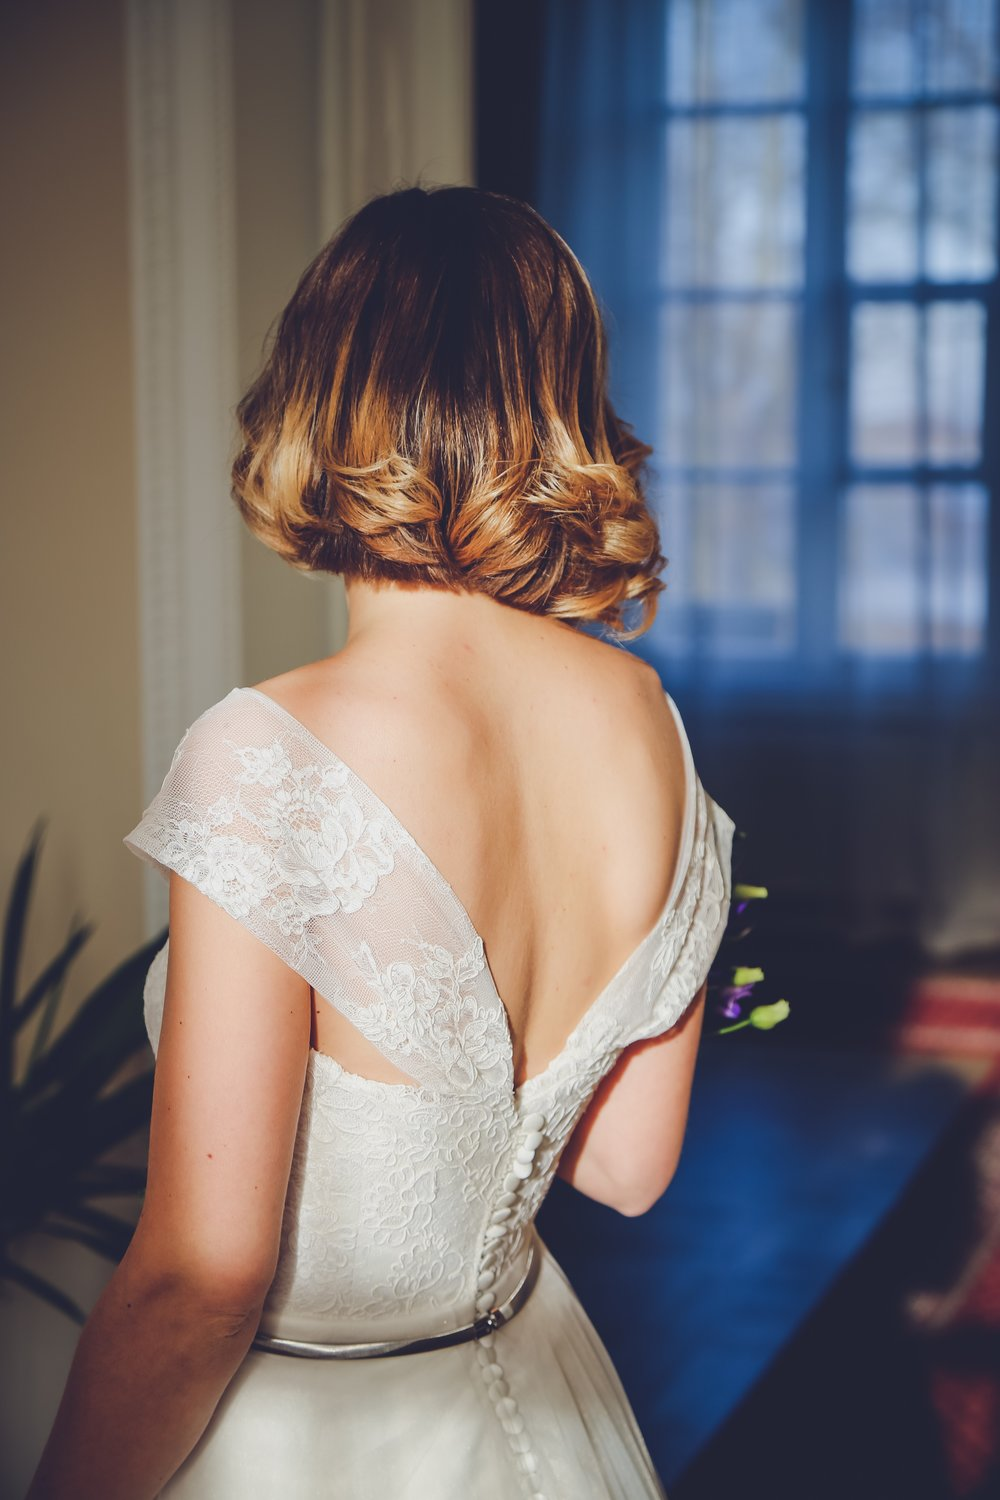 Bridal Package (in Salon)   - Hair color & cutUpdo or BlowoutBridal MakeupLash Extensions$499***Updo & Makeup $300